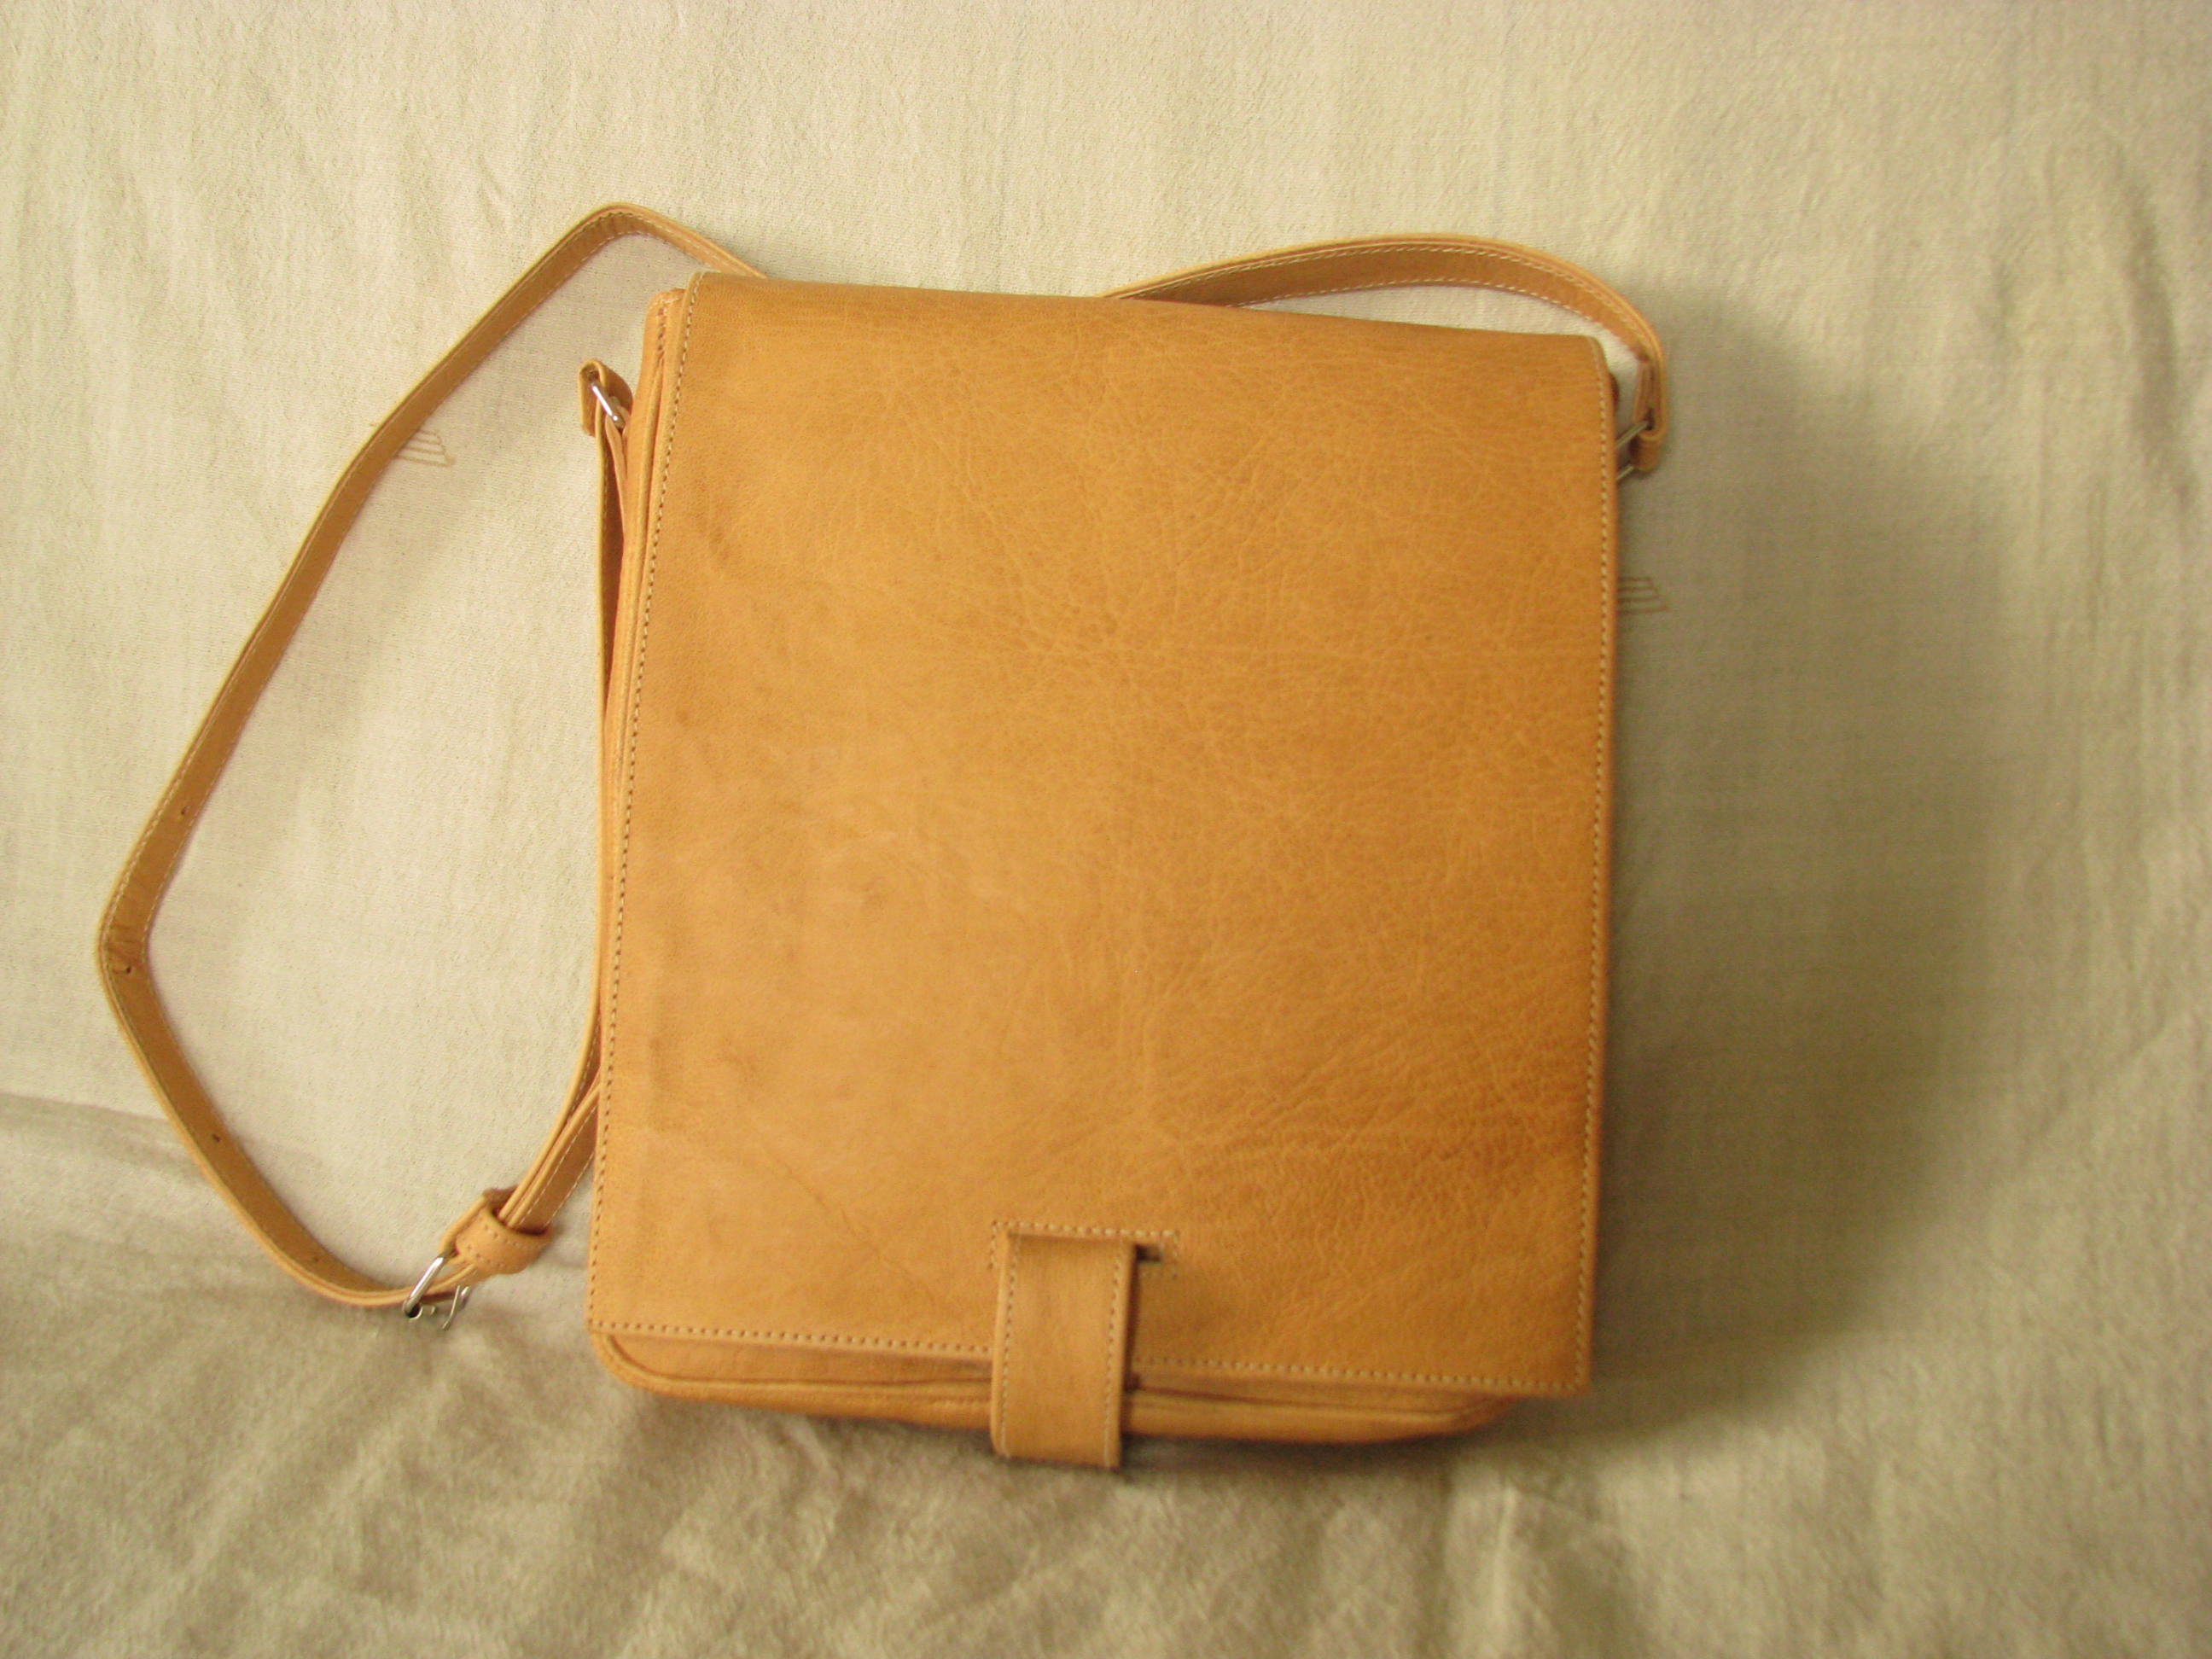 sac message en cuir naturel otto gundara